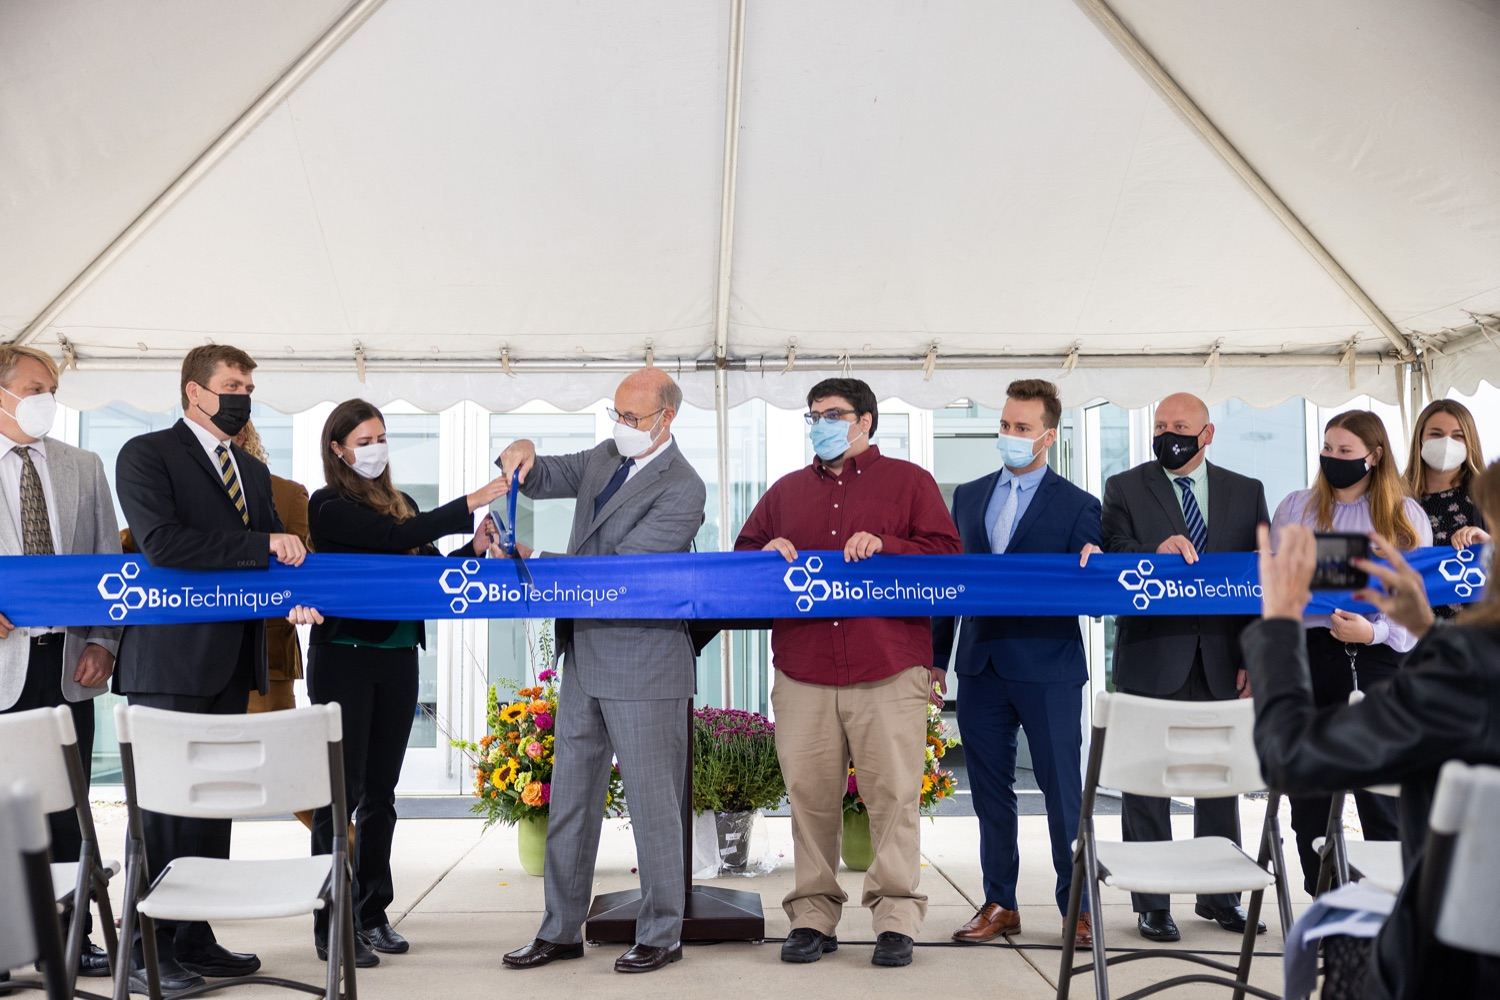 """<a href=""""https://filesource.wostreaming.net/commonwealthofpa/photo/20138_gov_BioTechniqueRibbon_dz_007.JPG"""" target=""""_blank"""">⇣Download Photo<br></a>Pennsylvania Governor Tom Wolf helps to cut the ribbon.  Governor Tom Wolf today joined BioTechnique CEO John Clapham, the Department of Community and Economic Developments (DCED) Governors Action Team (GAT), York County Economic Alliance CEO Kevin Schreiber, and local officials at the ribbon cutting ceremony for BioTechniques new pharmaceutical manufacturing facility in York County.   OCTOBER 12, 2021 - YORK, PA"""